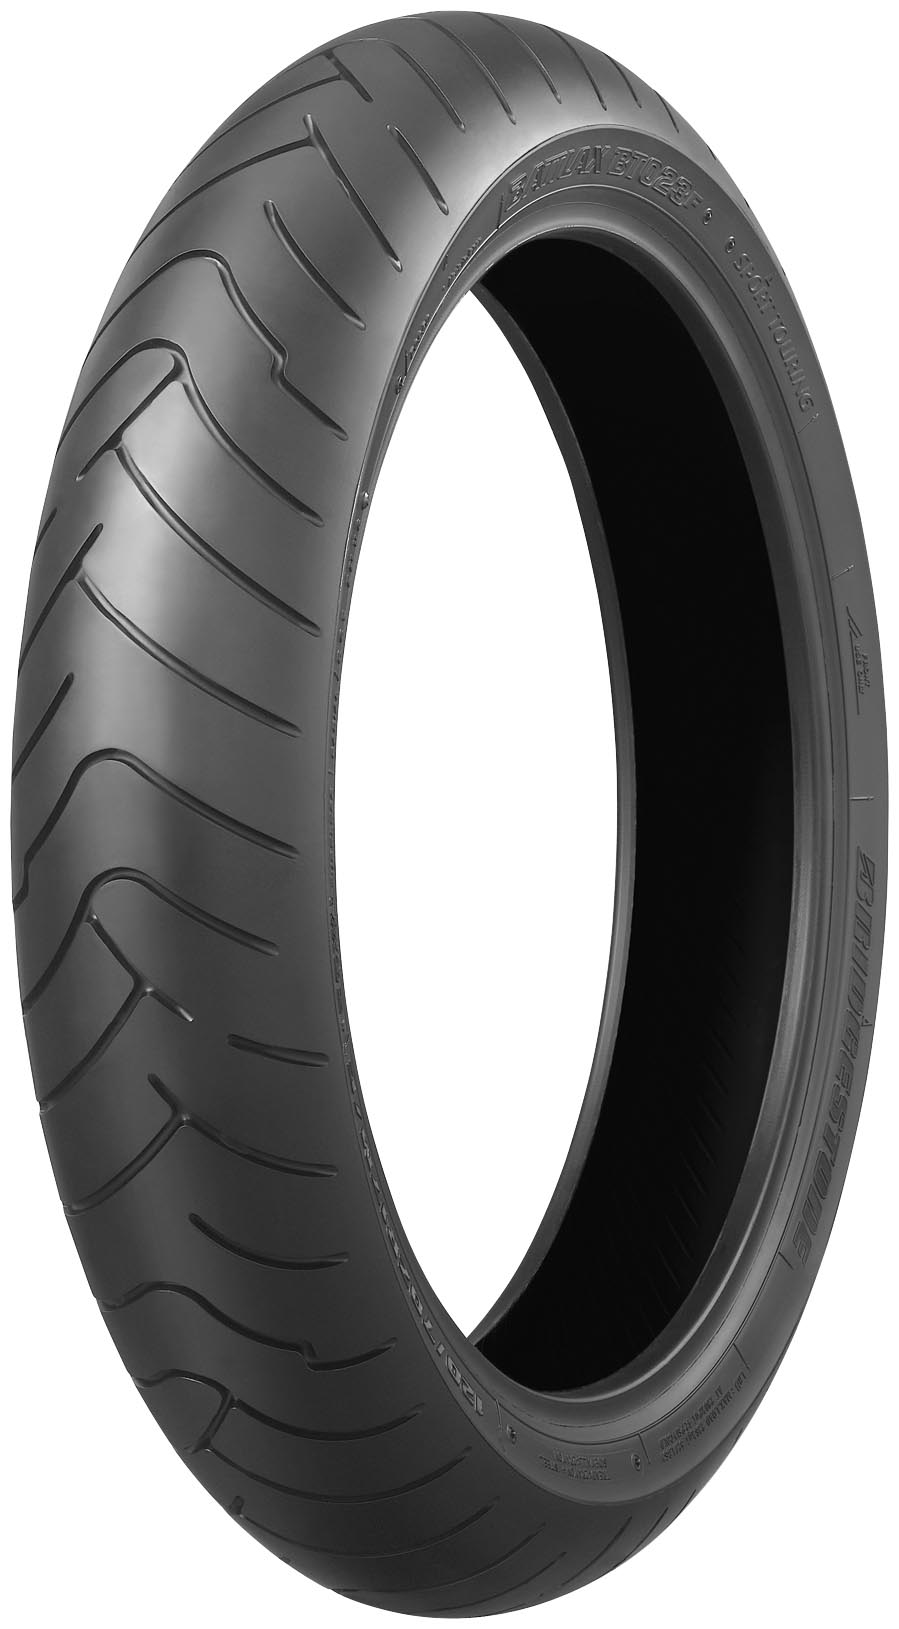 Bridgestone Battlax BT-023 Sport Touring Radial Tire